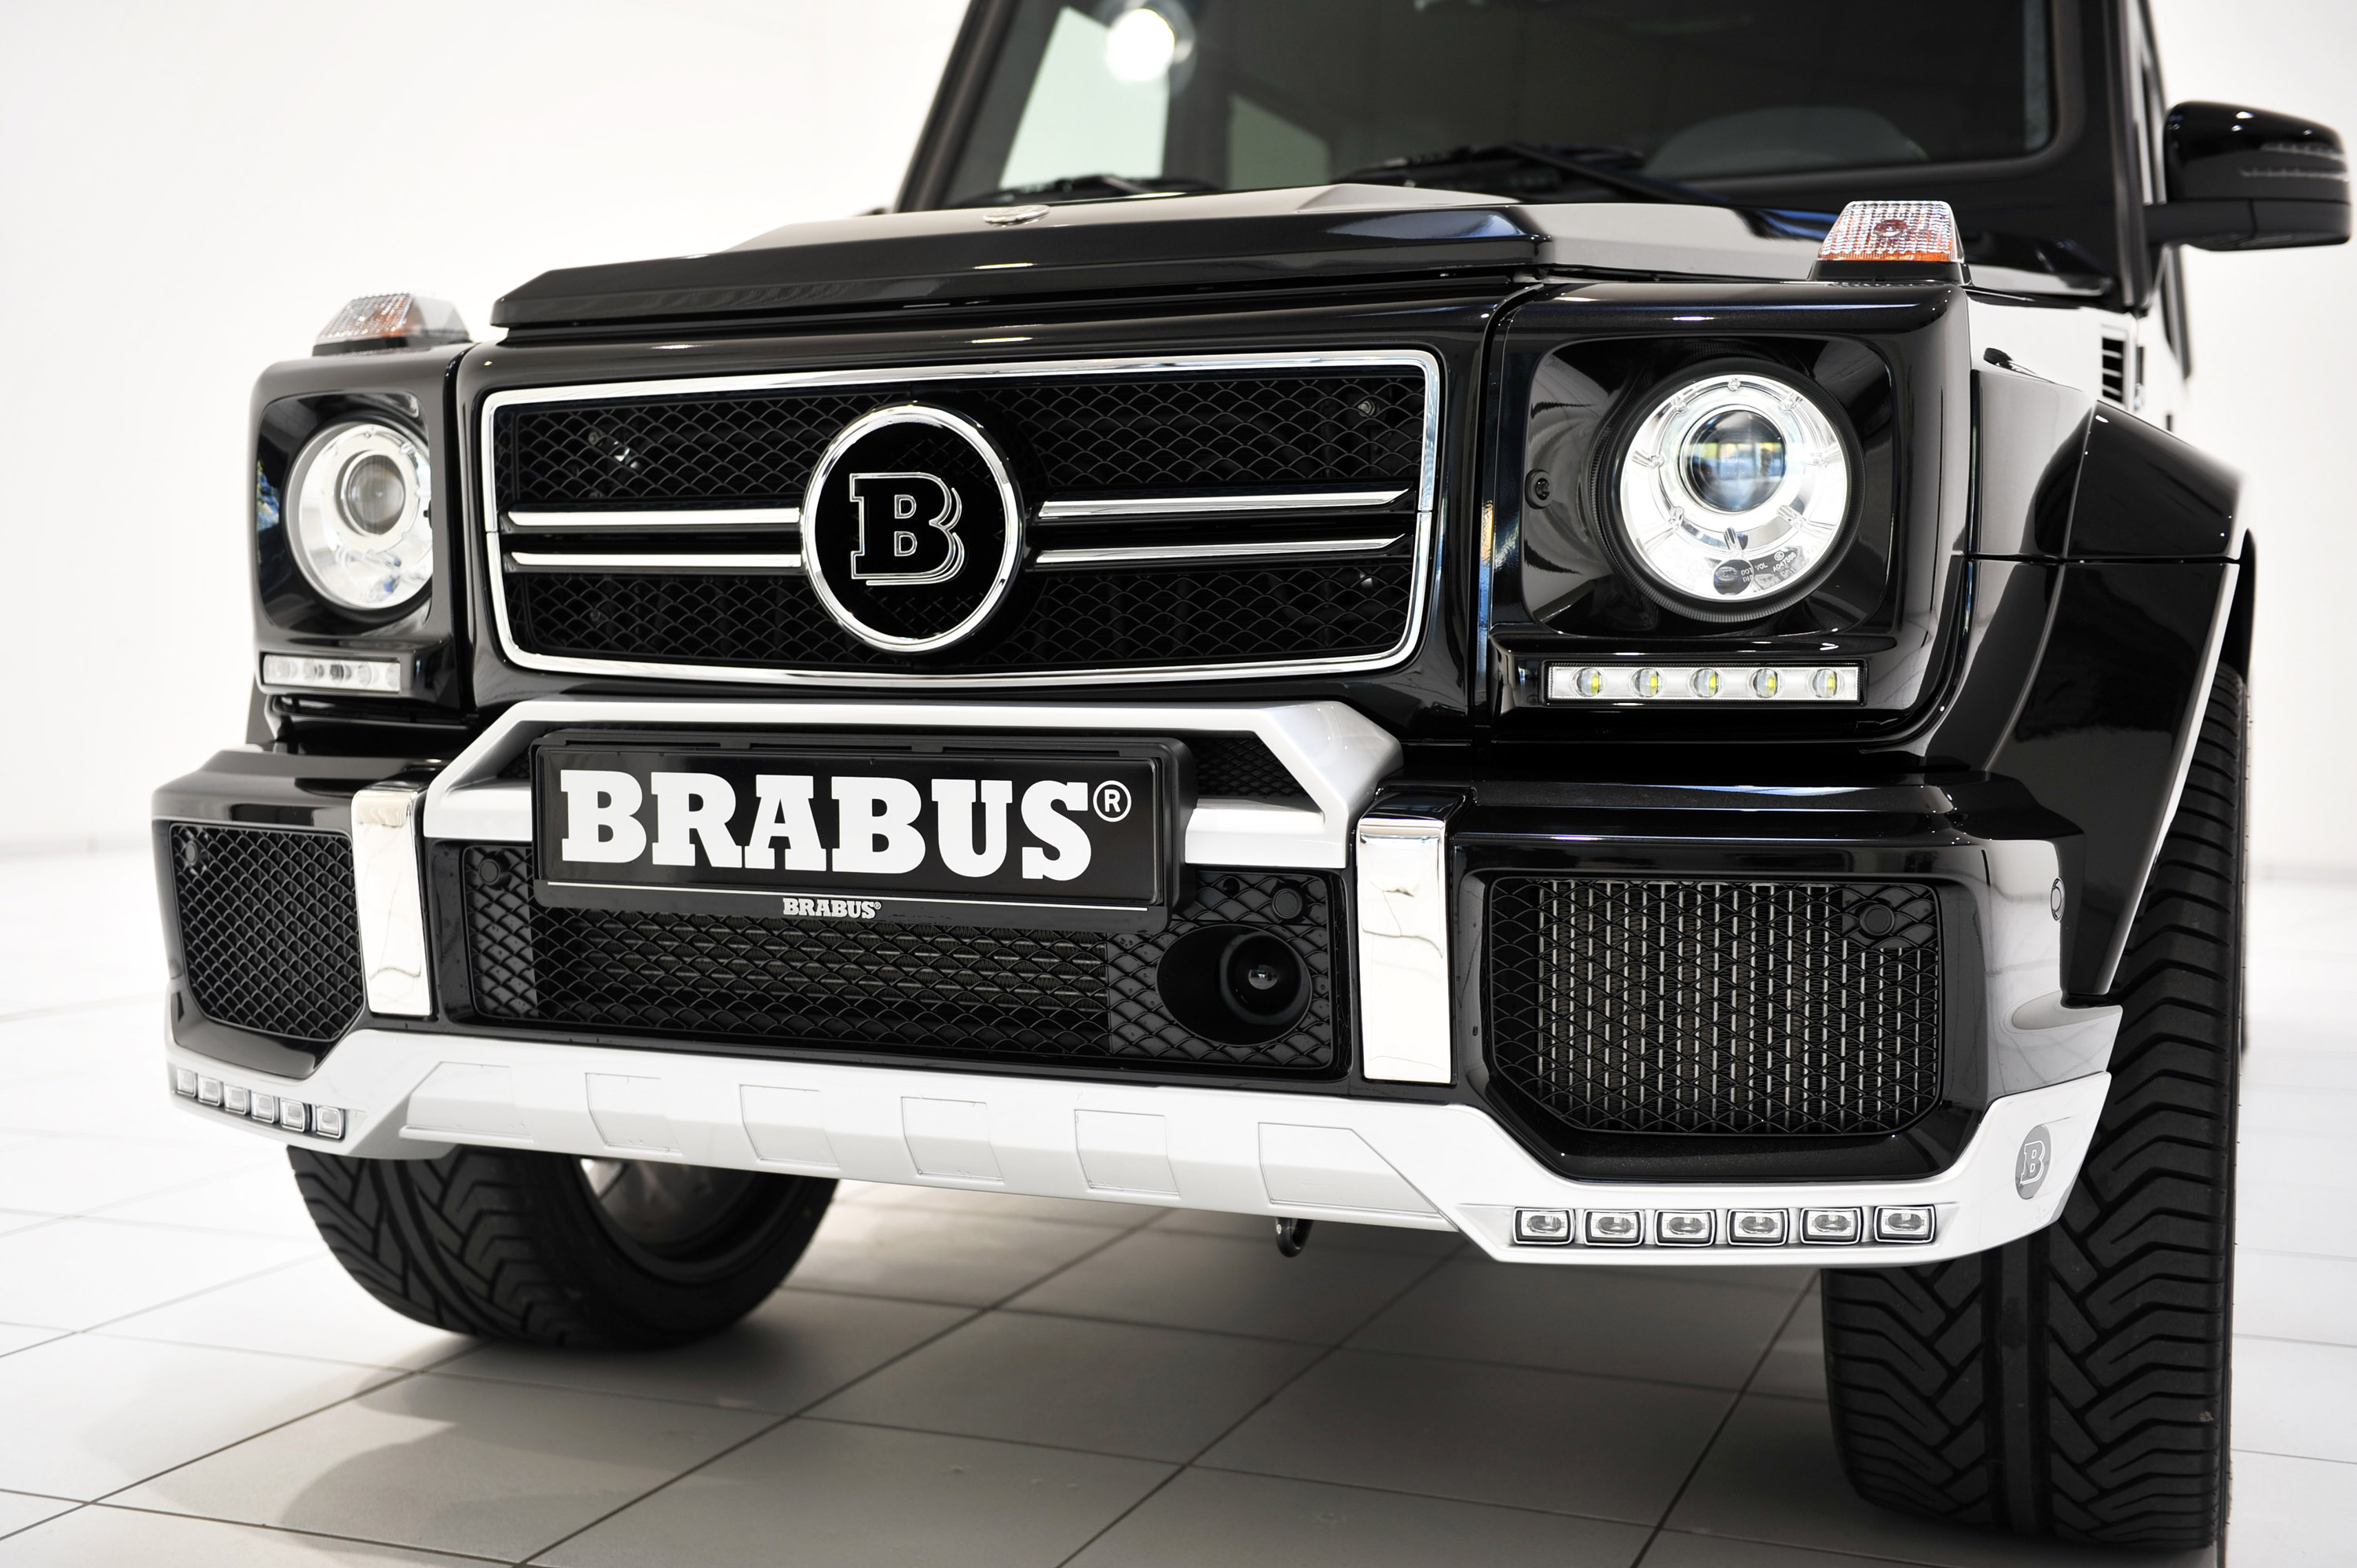 Brabus 2012 mercedes g 63 amg for Mercedes benz usa llc brunswick ga